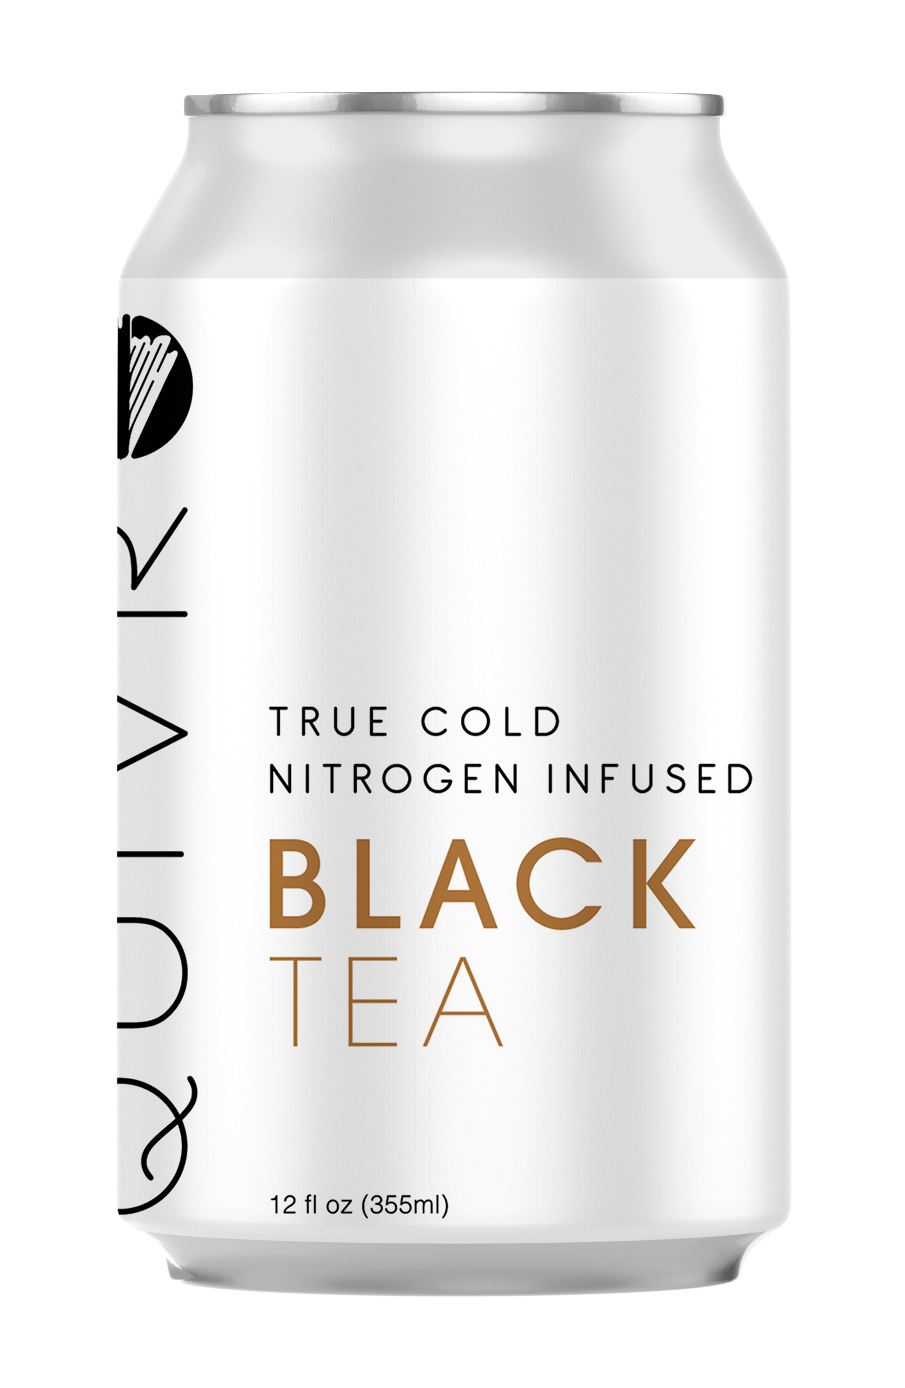 A Quivr Black Tea can showing the flavor name